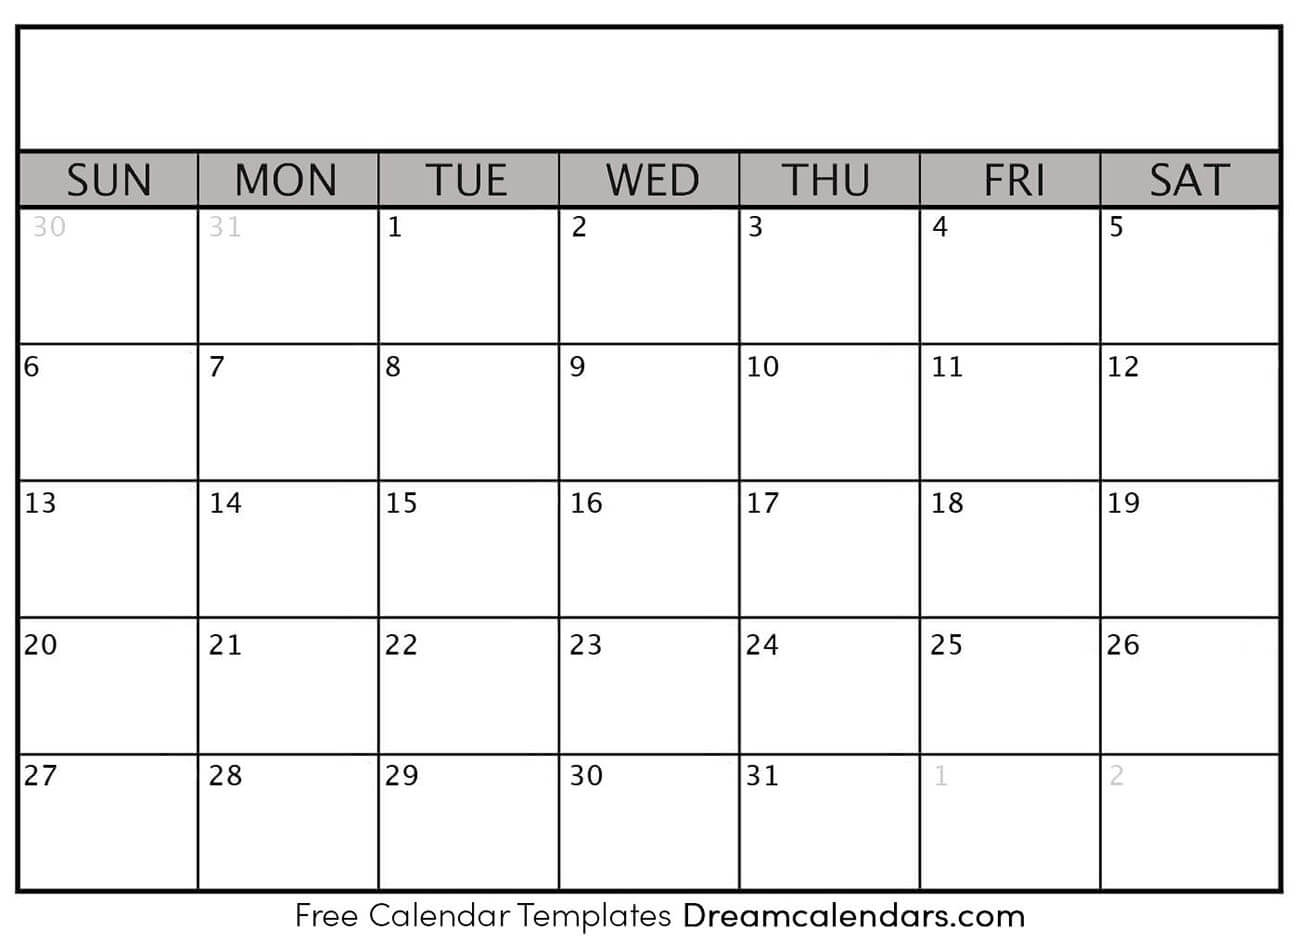 Printable Blank Calendar 2020 | Dream Calendars within Calender 2020 With Space To Write